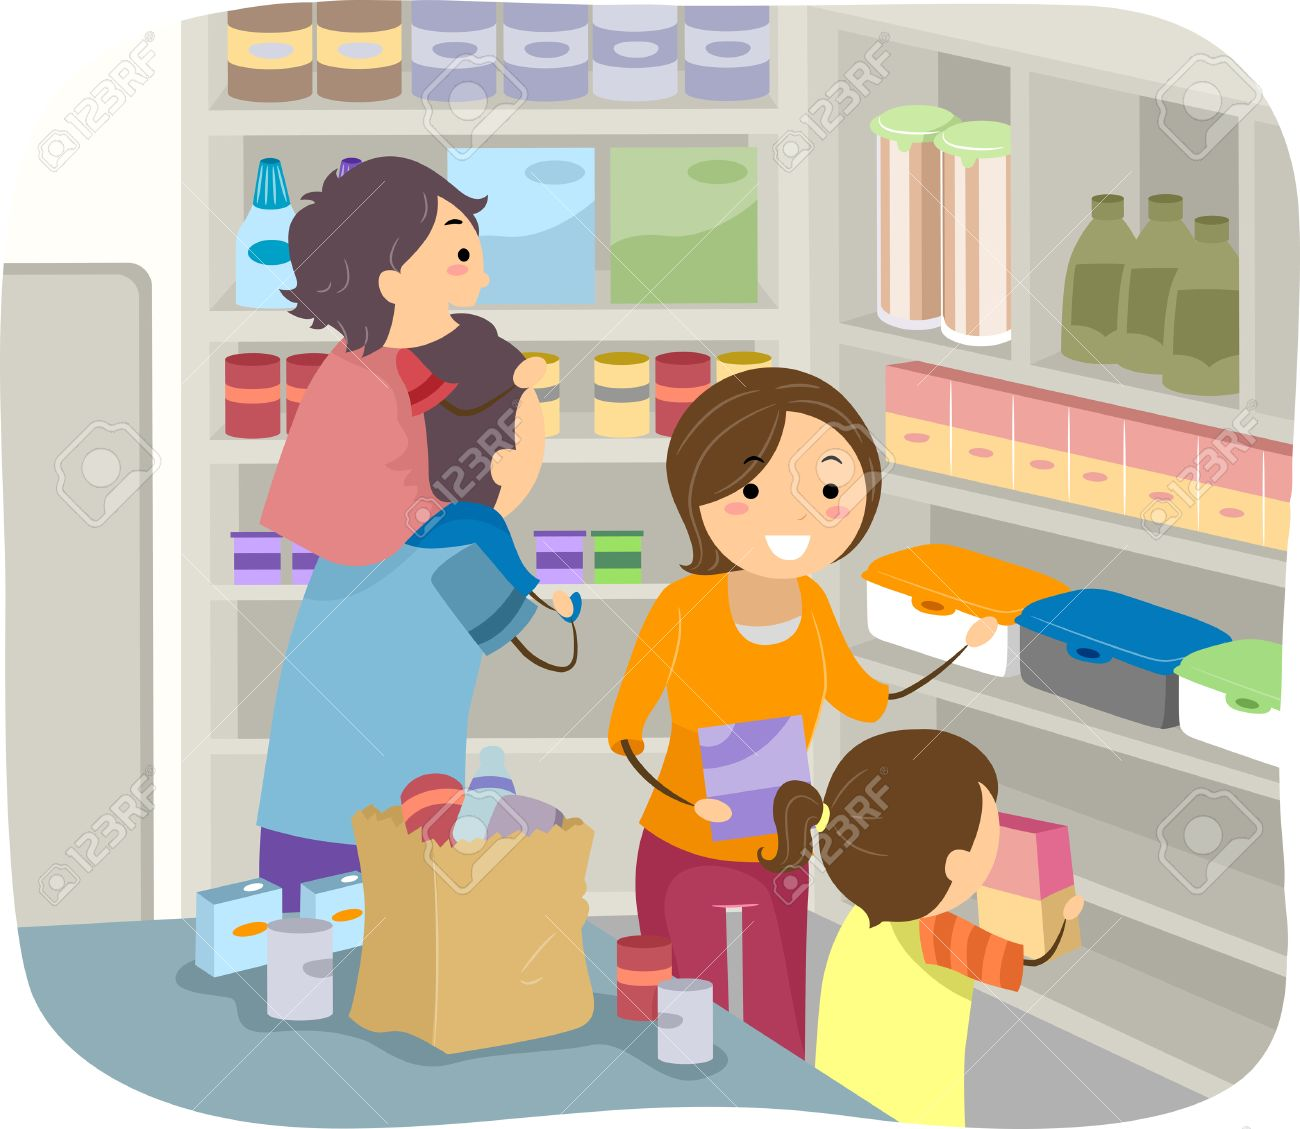 Illustration of a Family Stocking Their Shelves with Goods Stock Vector - 28966202